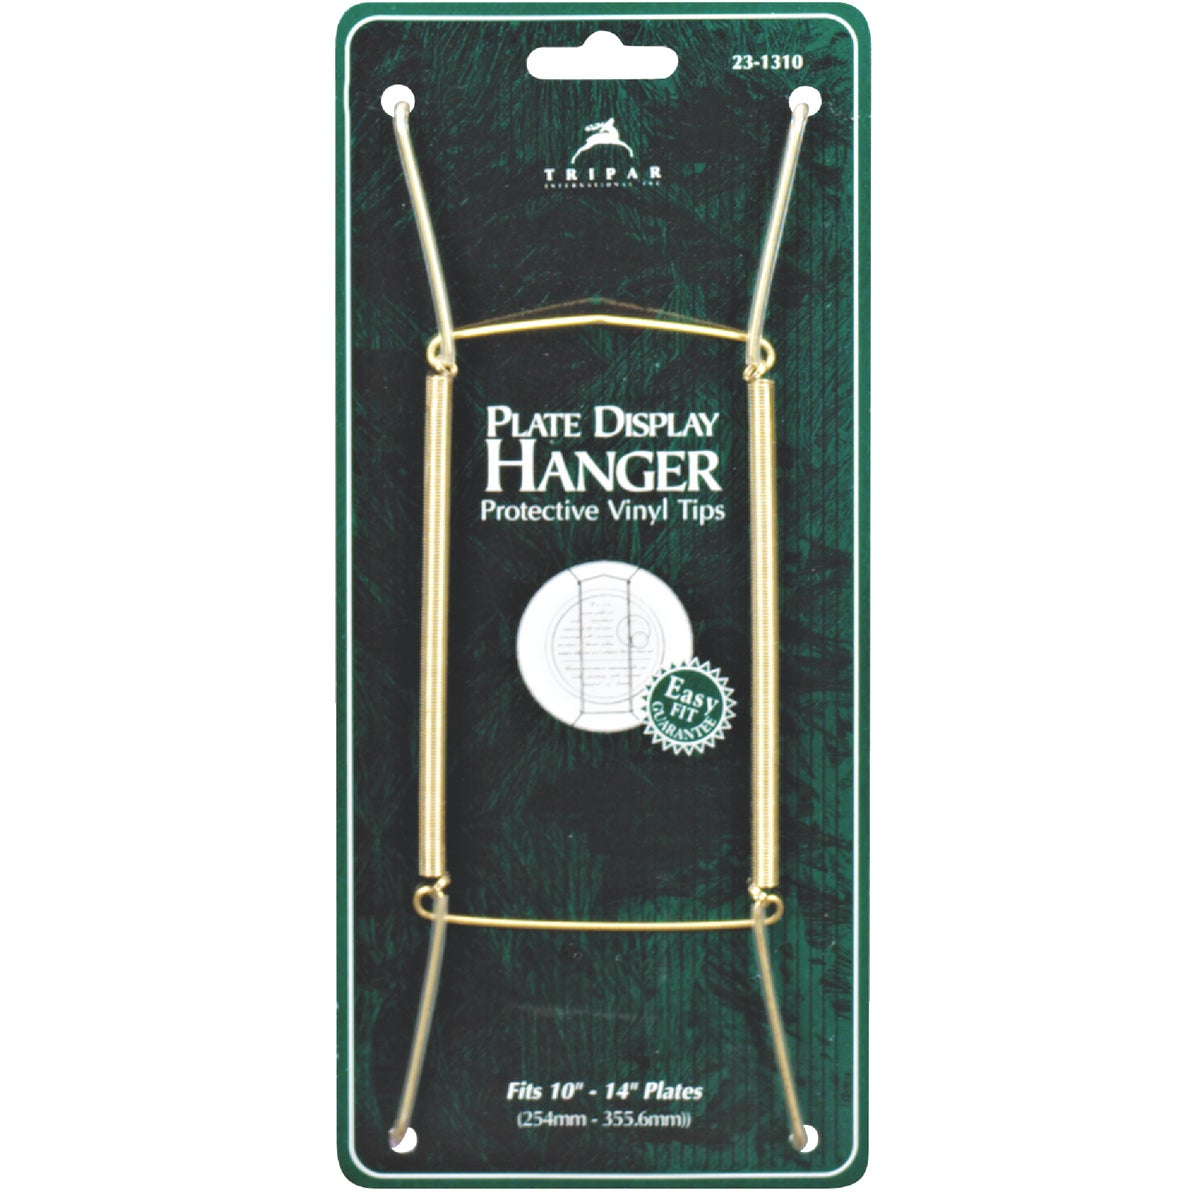 BRASS WIRE PLATE HANGER - 23-1310 by Tripar Intl